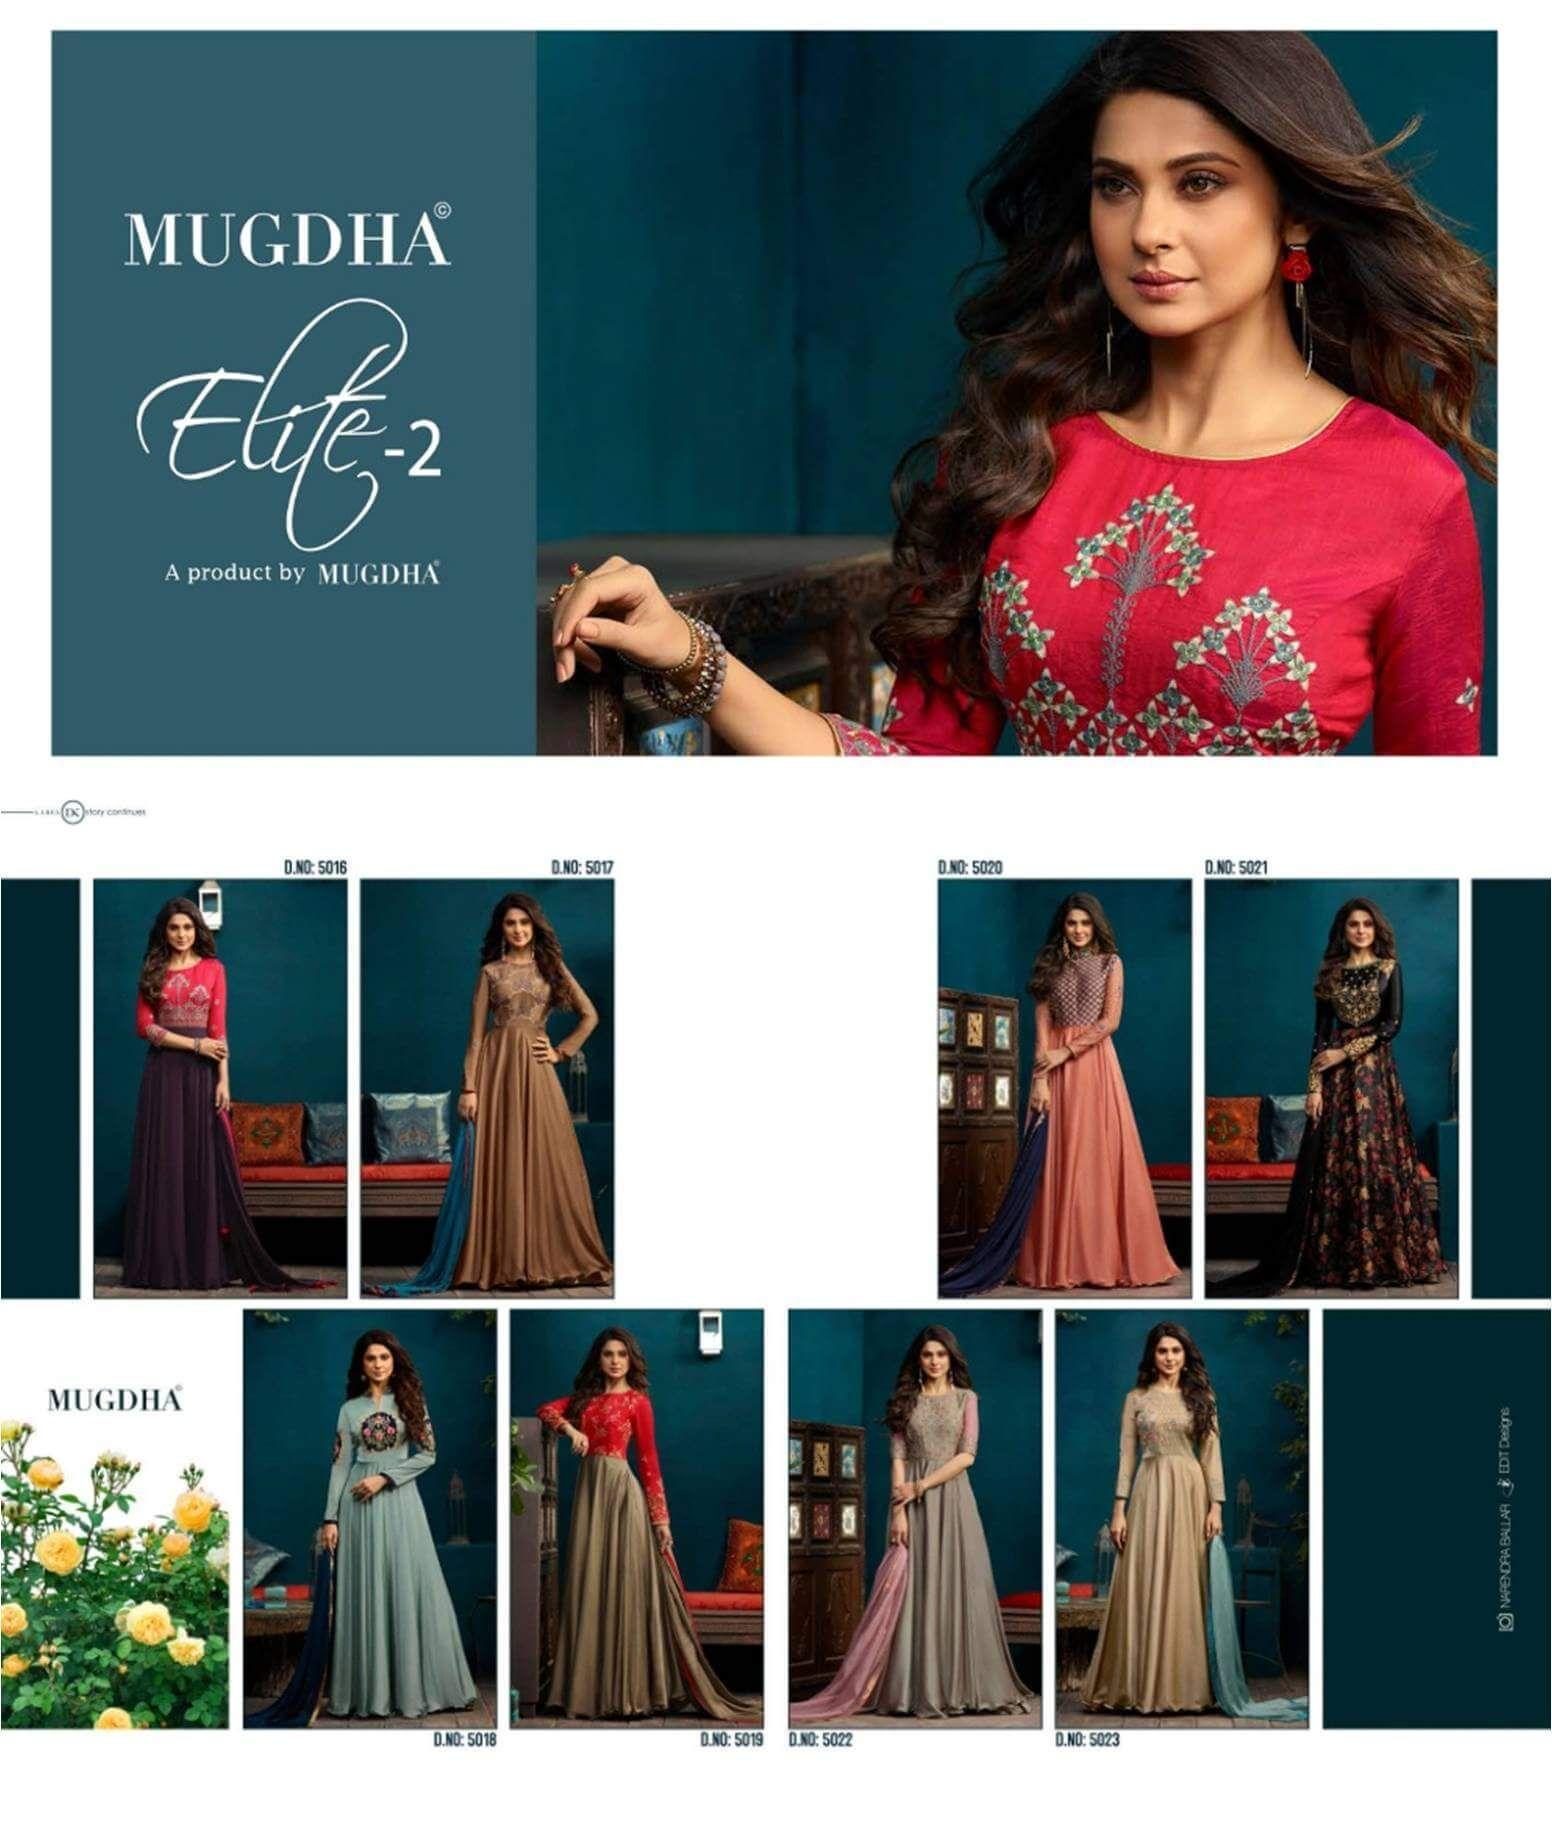 9474599b05 Shop Anarkali Gown Mugdha Elite 2 Online with the best price. Flaunt latest  styled cuts and look with these Indian Dresses, Give yourself the stylish  look ...